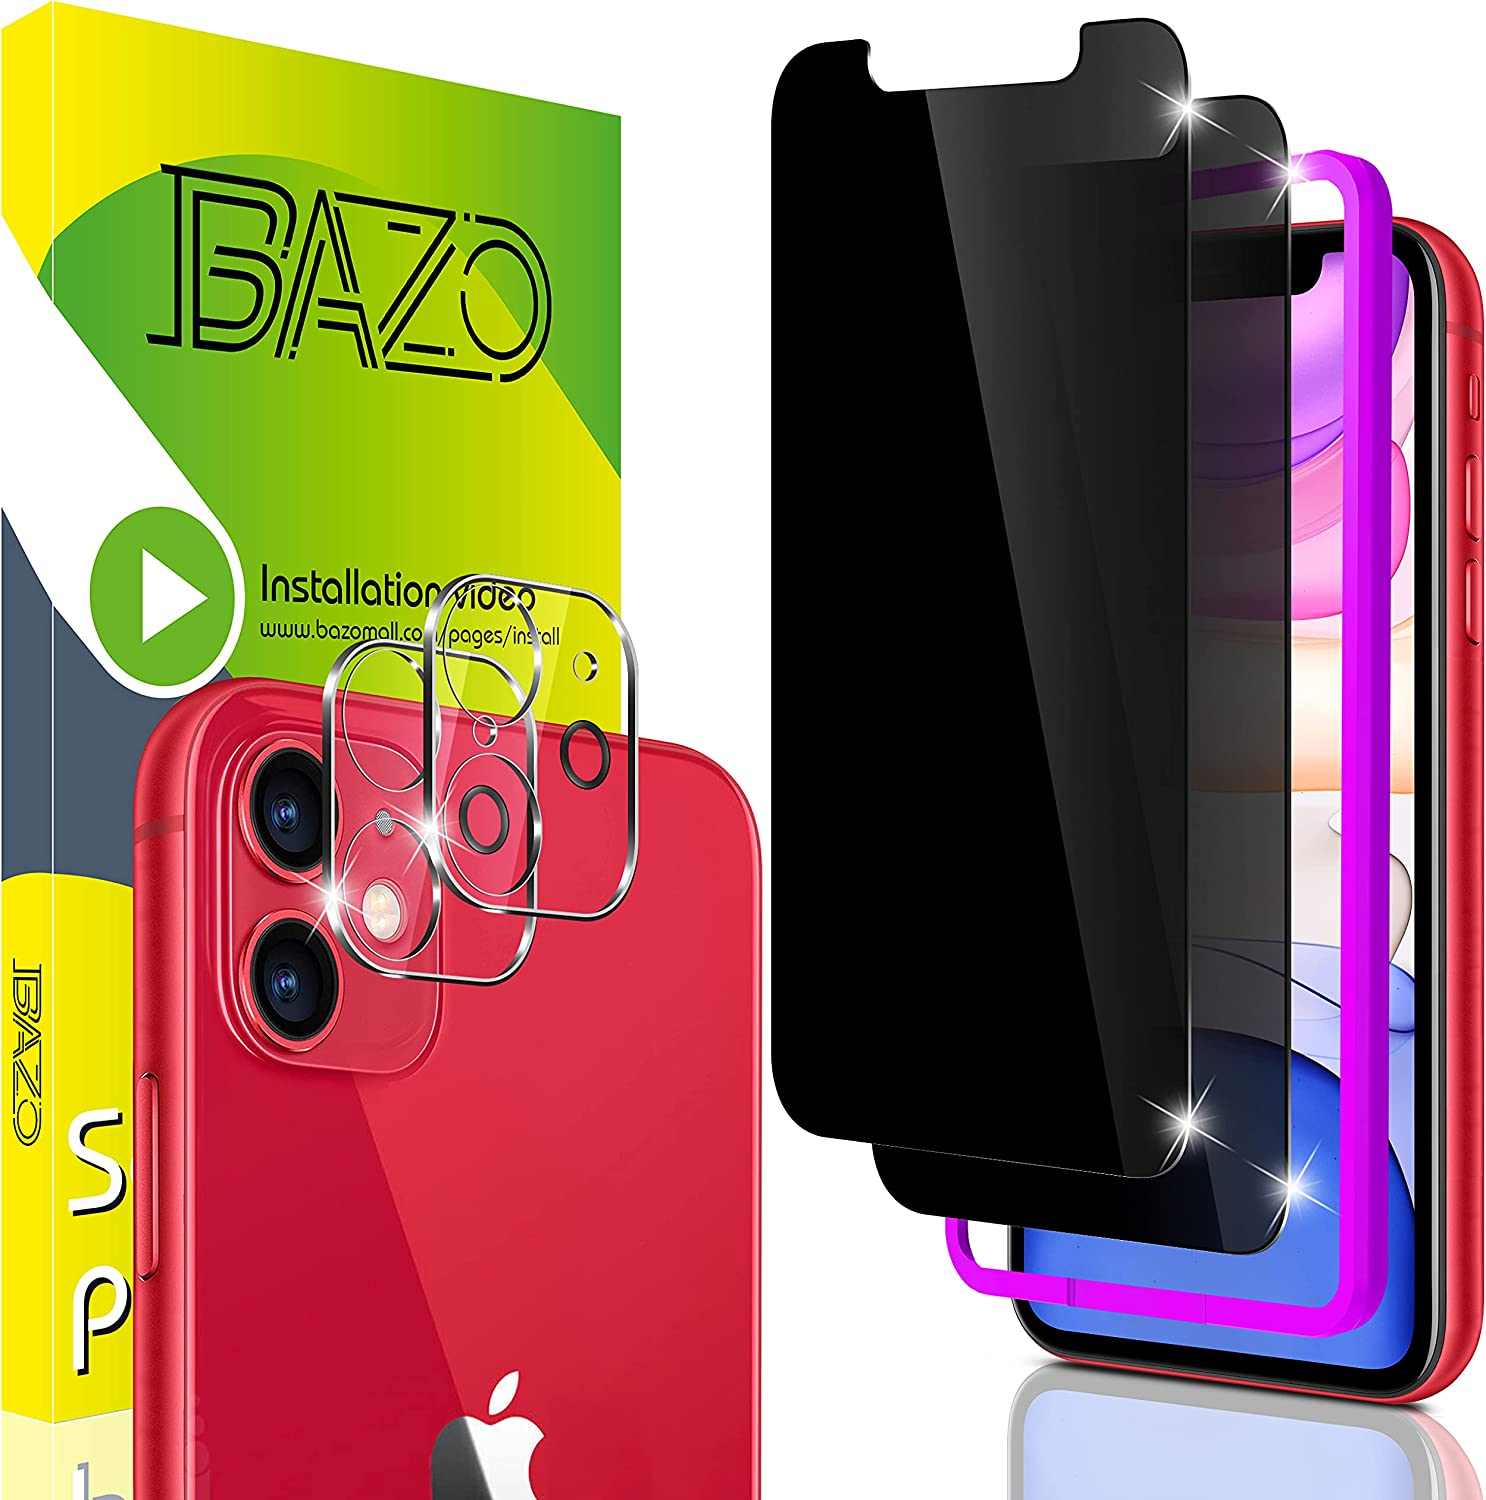 BAZO 2 Pack Privacy Glass Screen Protector for iPhone 11 (6.1 inch) with Easy Installation Frame +2 Pack Camera Lens Protector - Case Friendly -Anti Spy - 9H Hardness -HD Clear -Tempered Glass